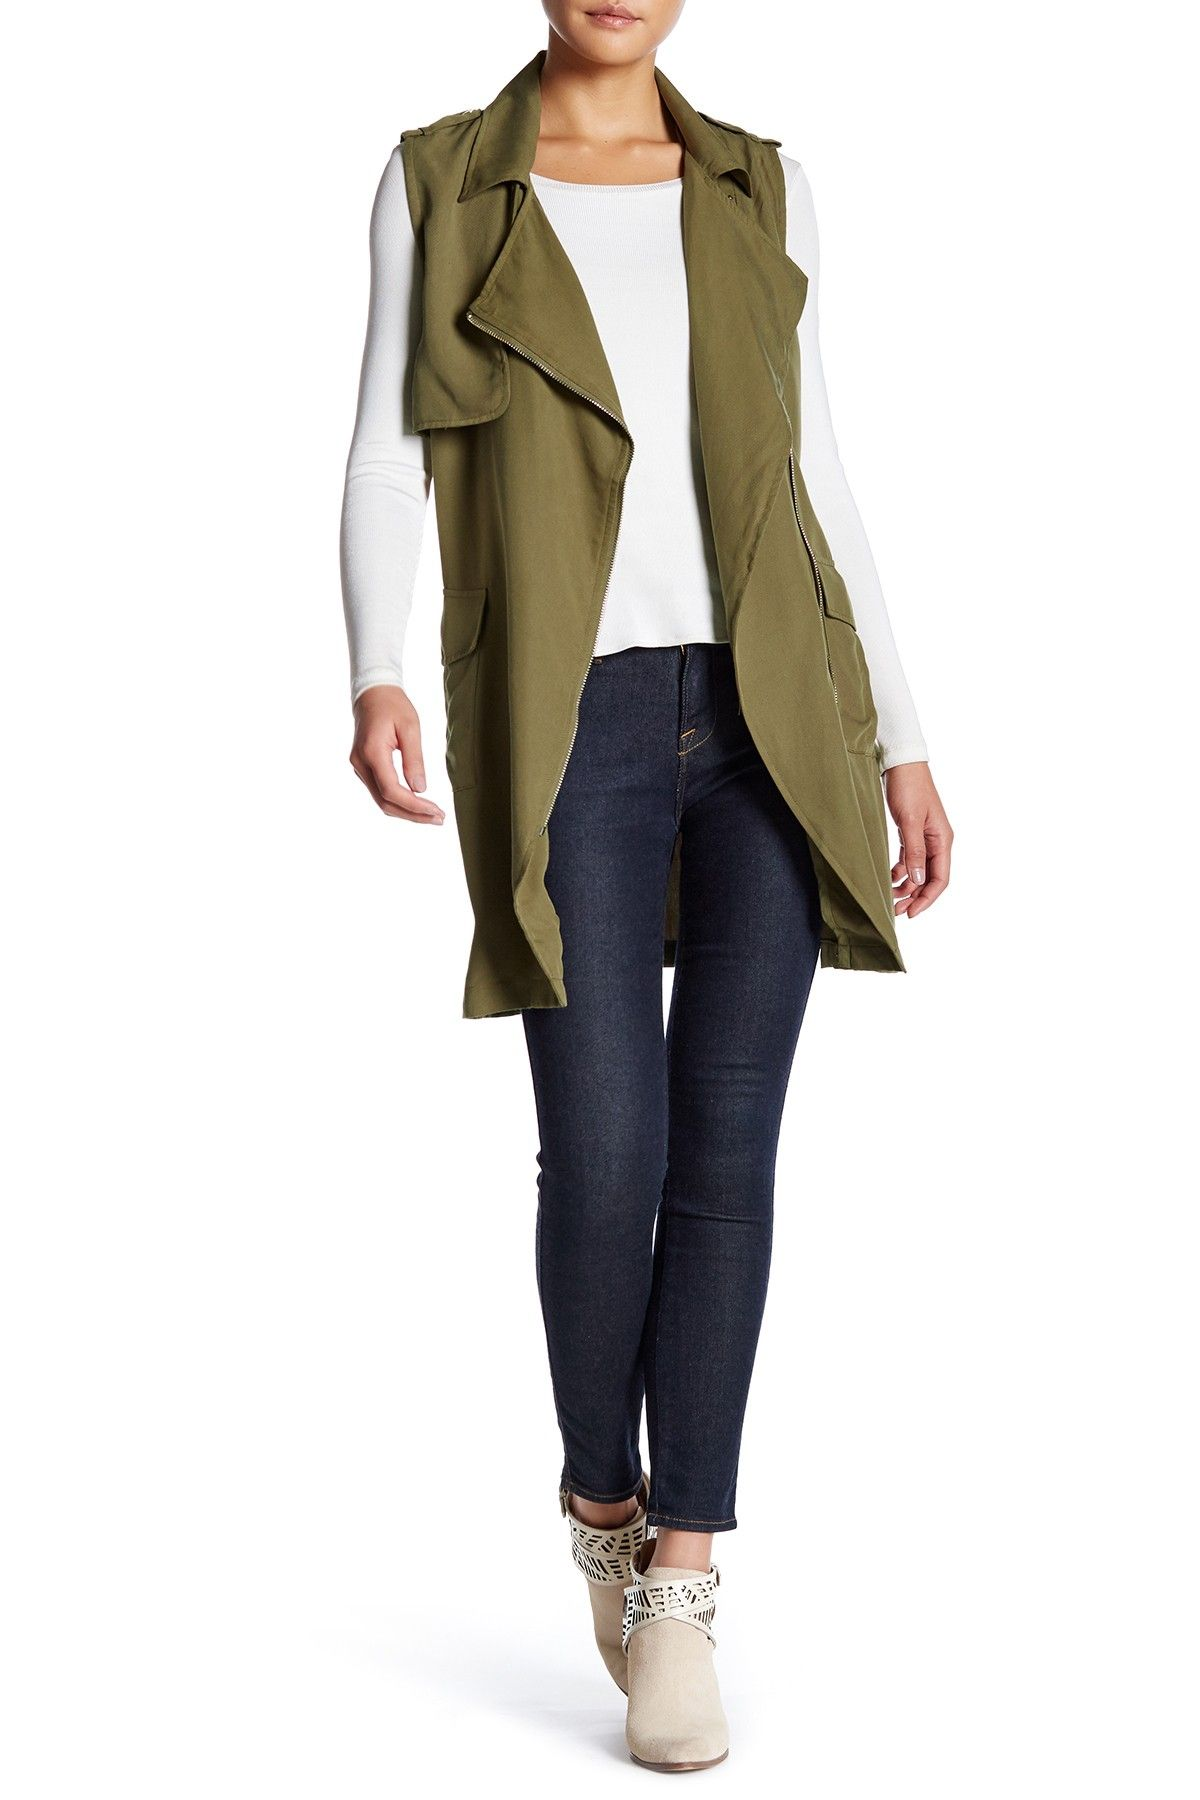 Belted Zip Army Vest by Fate on @nordstrom_rack